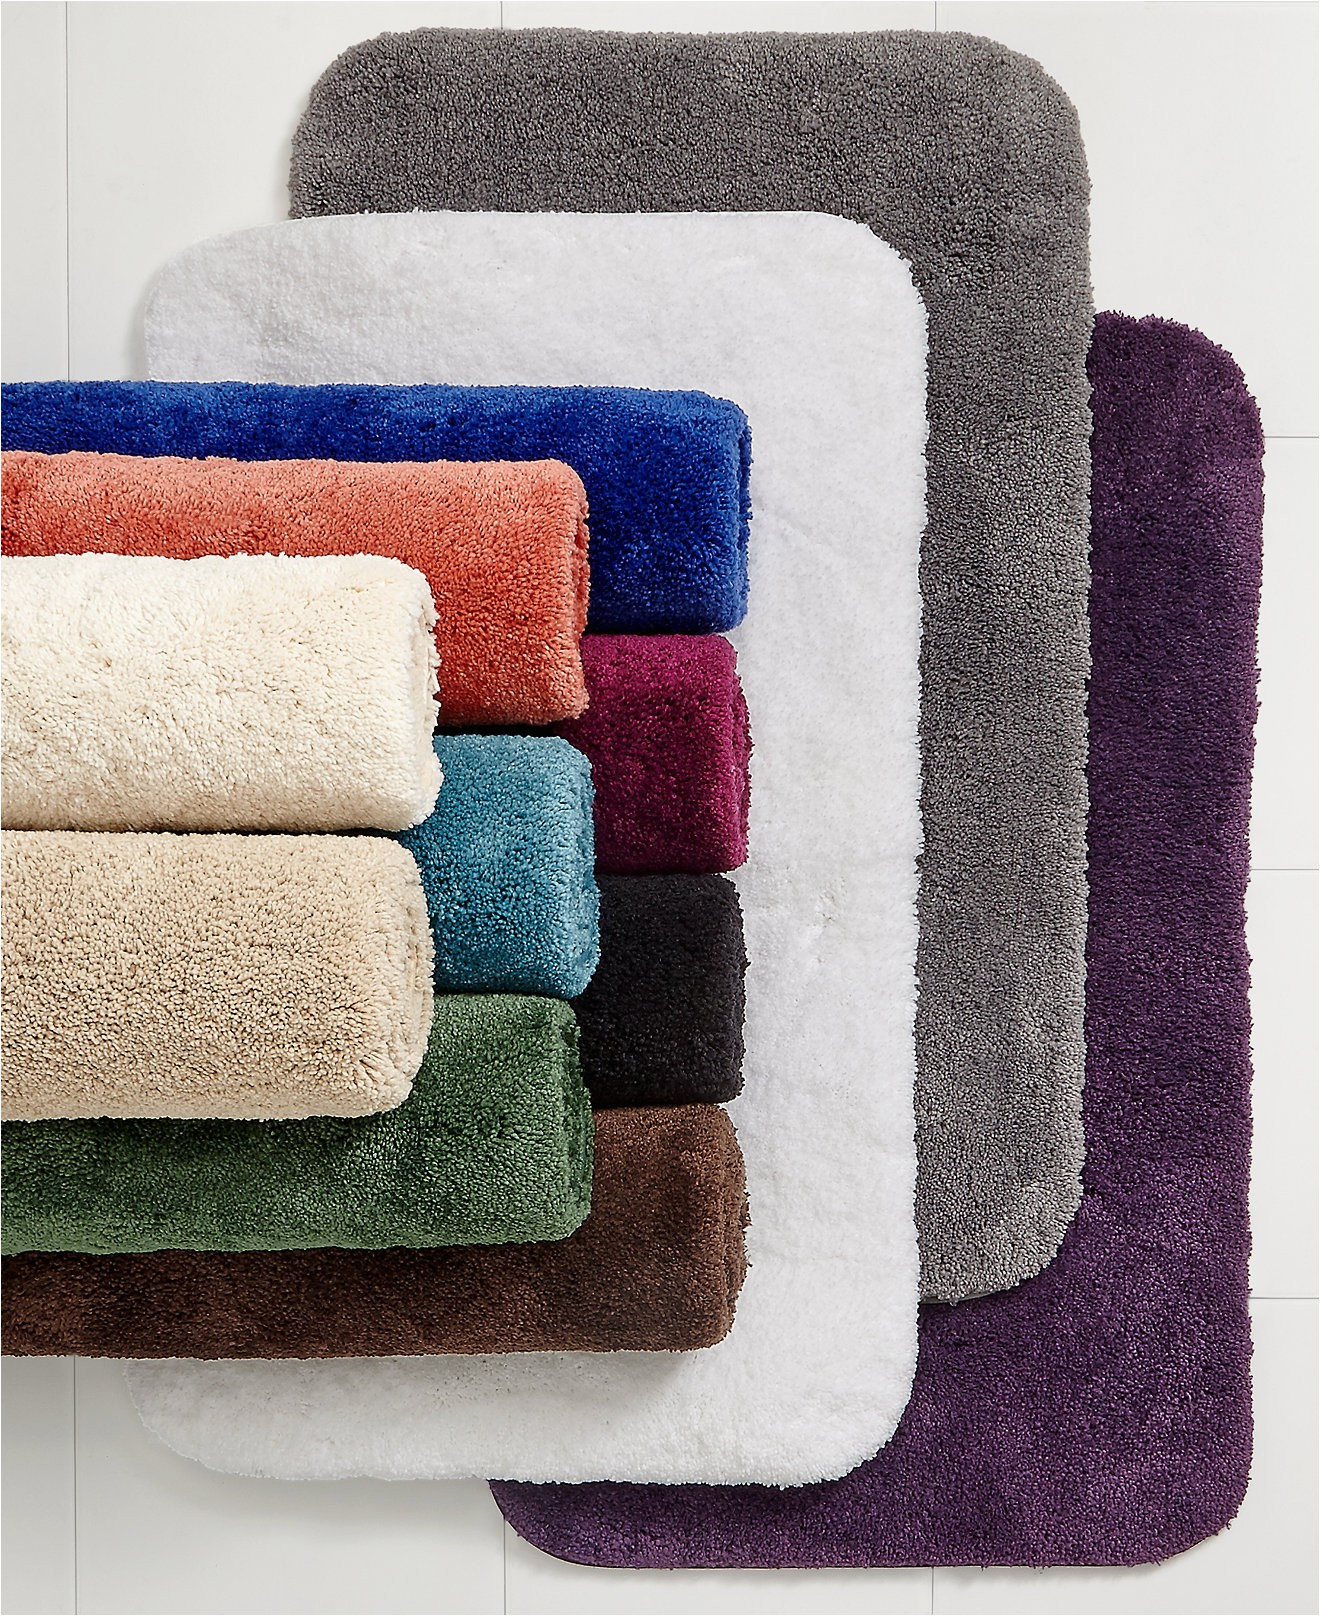 small bath rug in twelve option colors costco bath rugs pottery barn bath rugs bed bath beyond area rugs macys bath towels blue rugs tar mohawk memory foam bath mat shag bathroom rugs jcpenney rugs